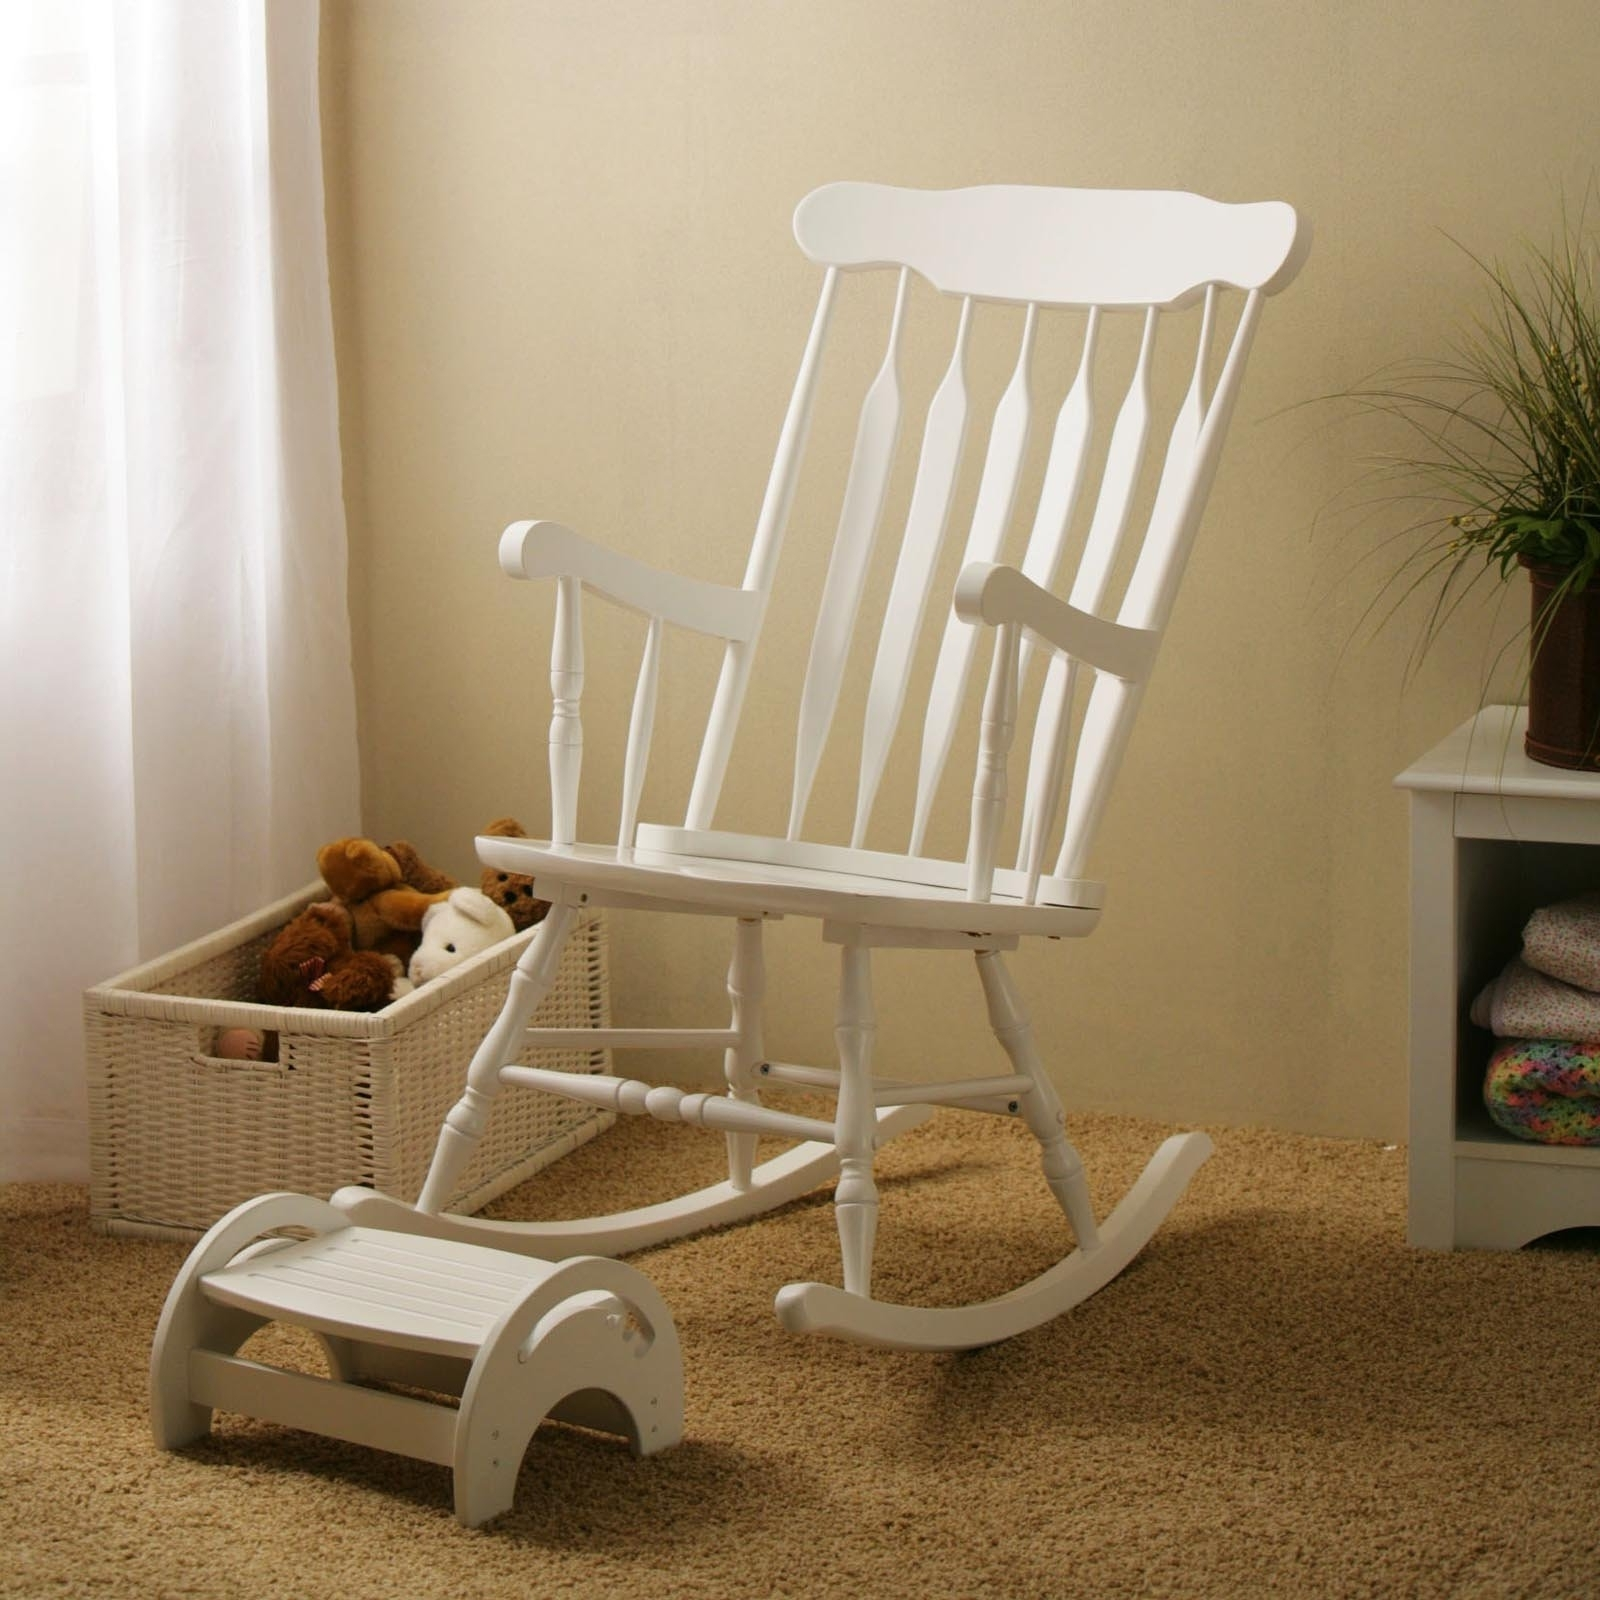 Famous Nursery Rocking Chair Melbourne – Nursery Rocking Chair For Mom And Within Rocking Chairs With Footstool (View 6 of 15)